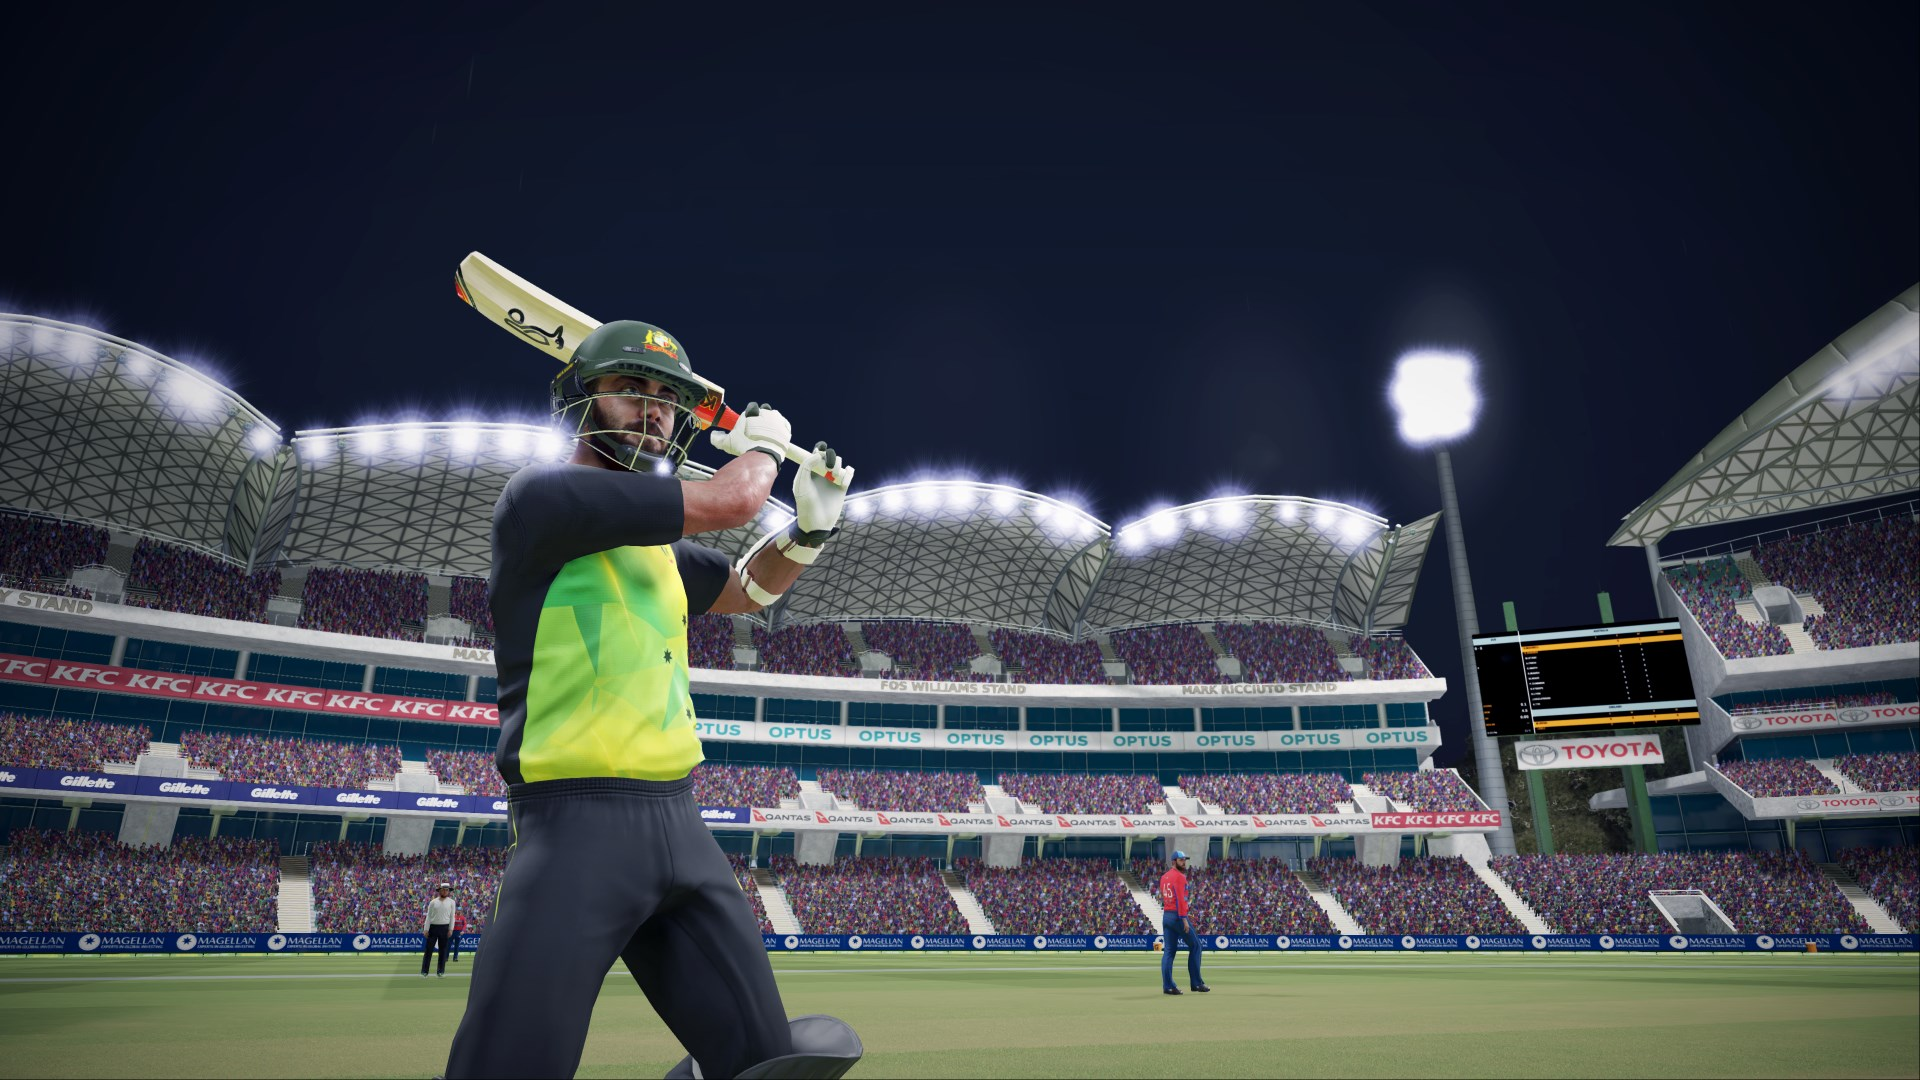 ASHES CRICKET скриншот 3